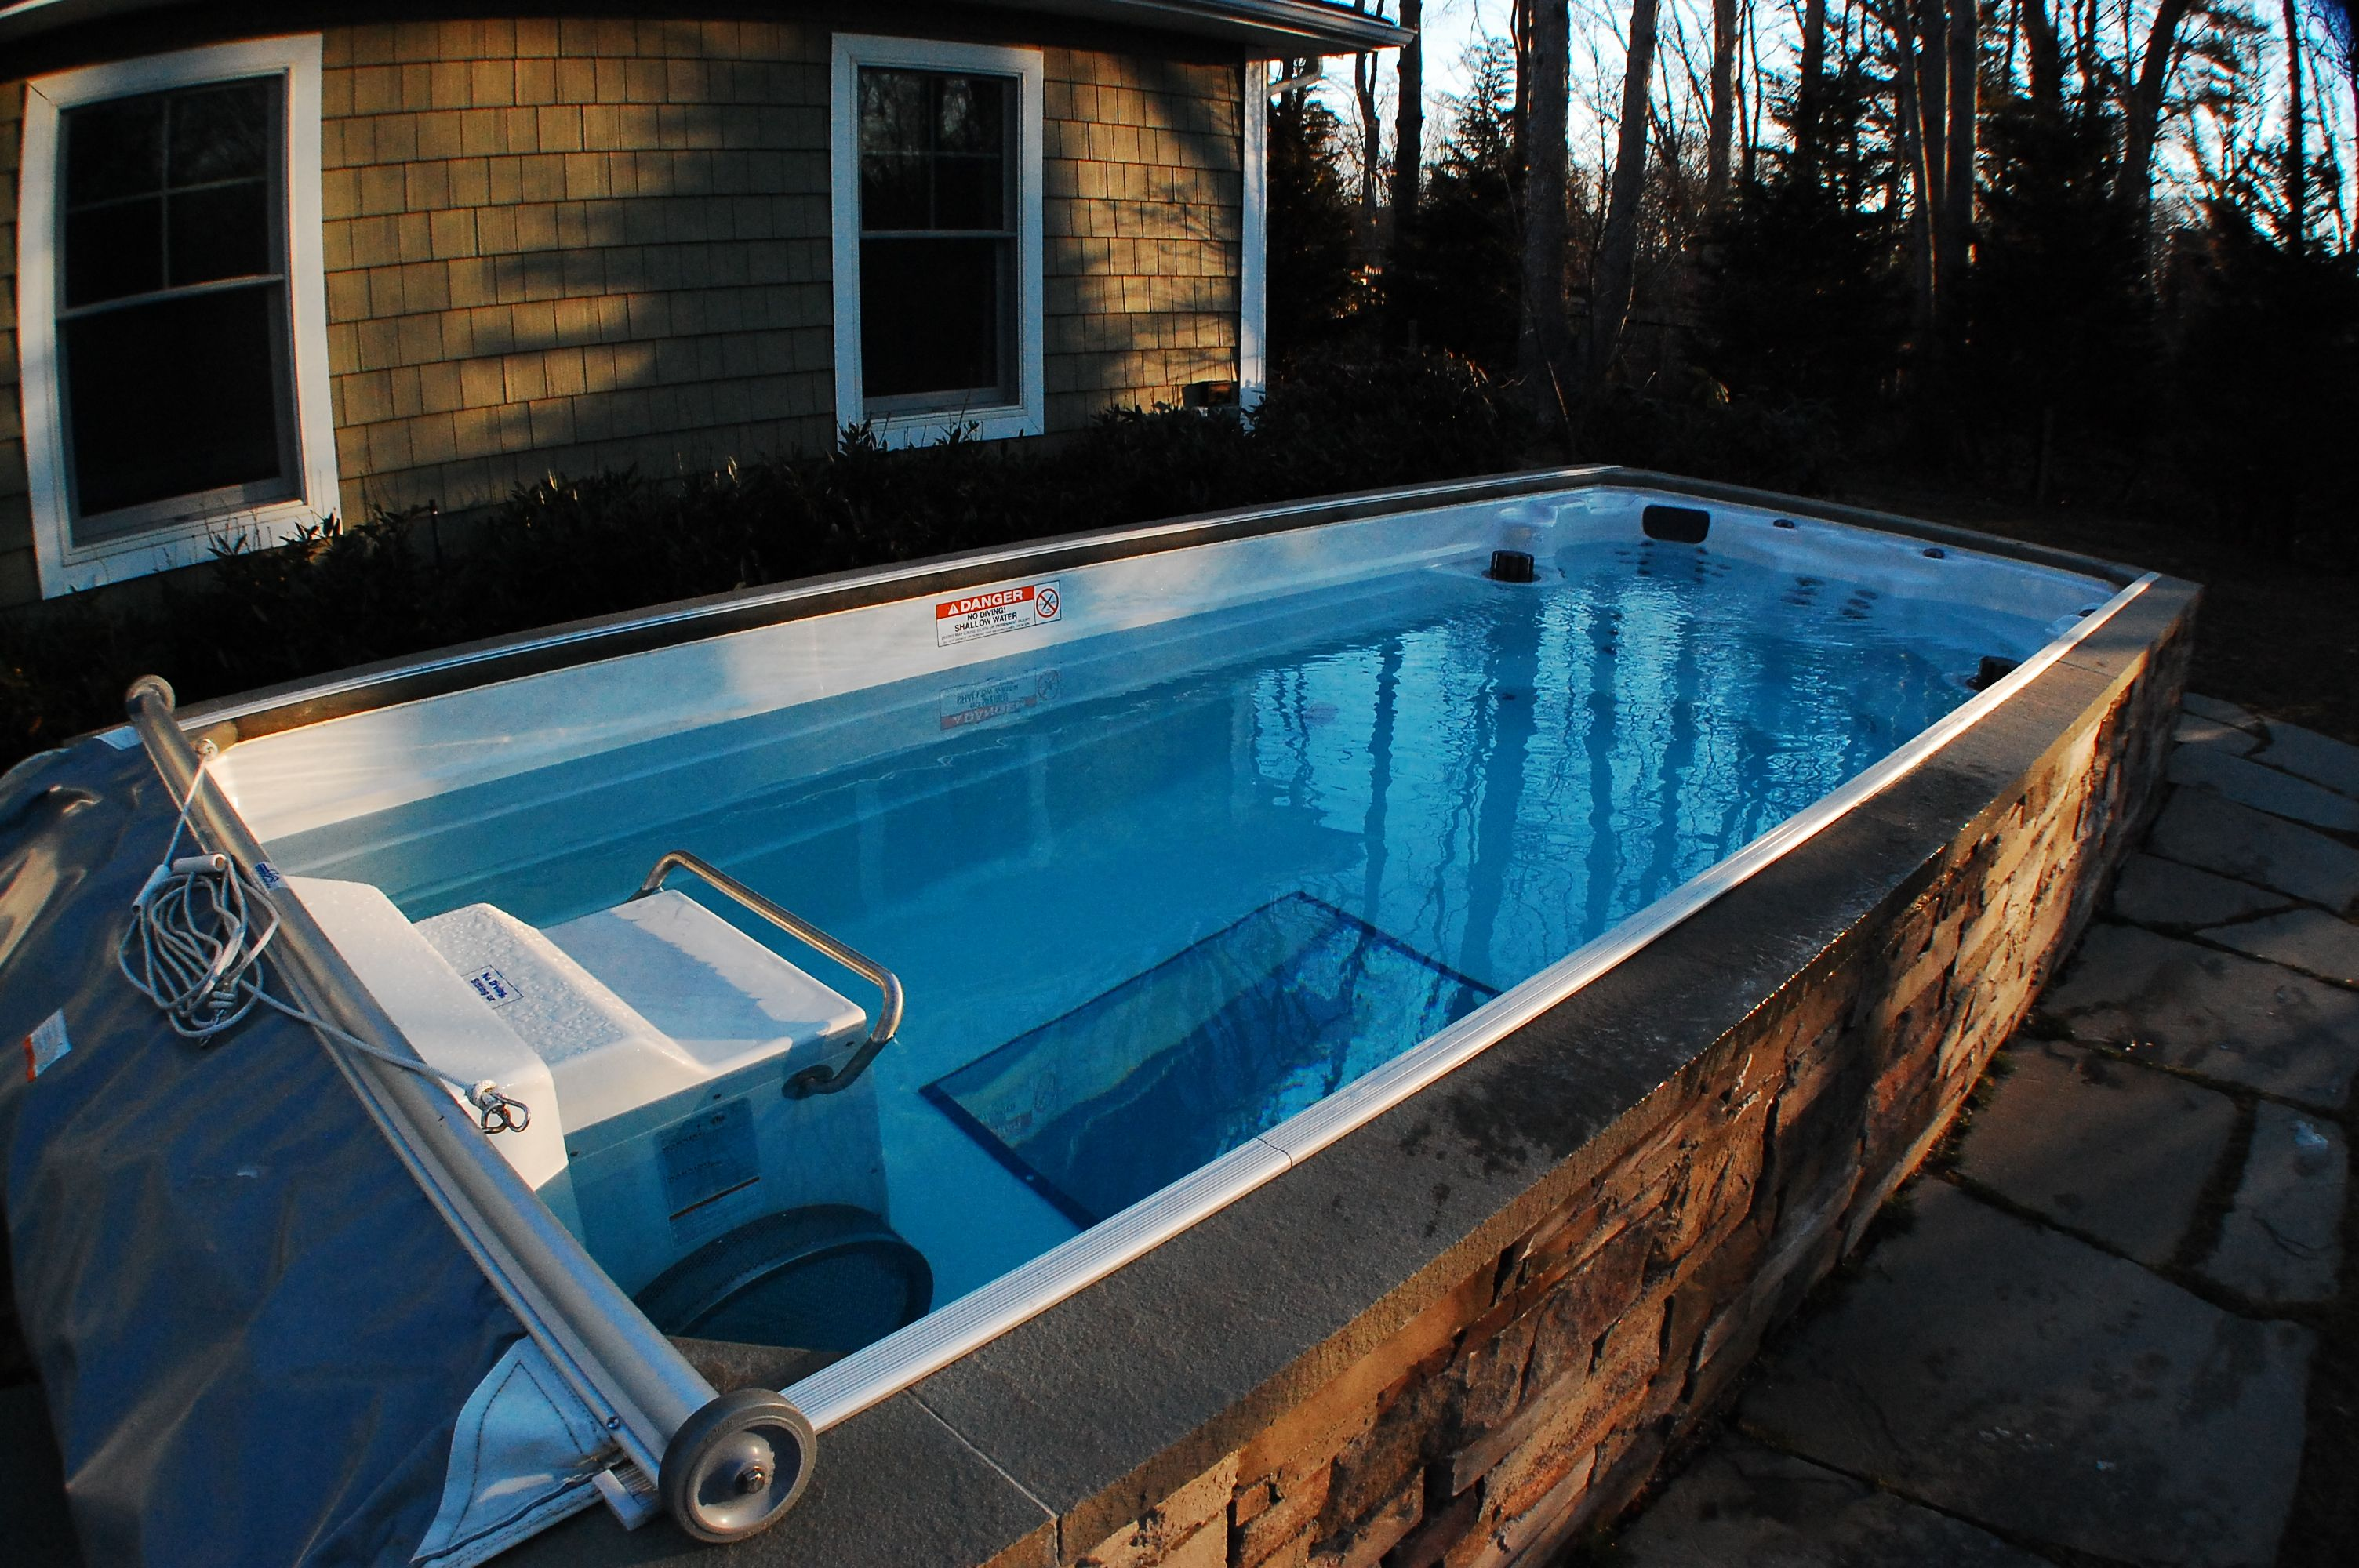 The 17' Endless Pool Swim Spa in this backyard is a great